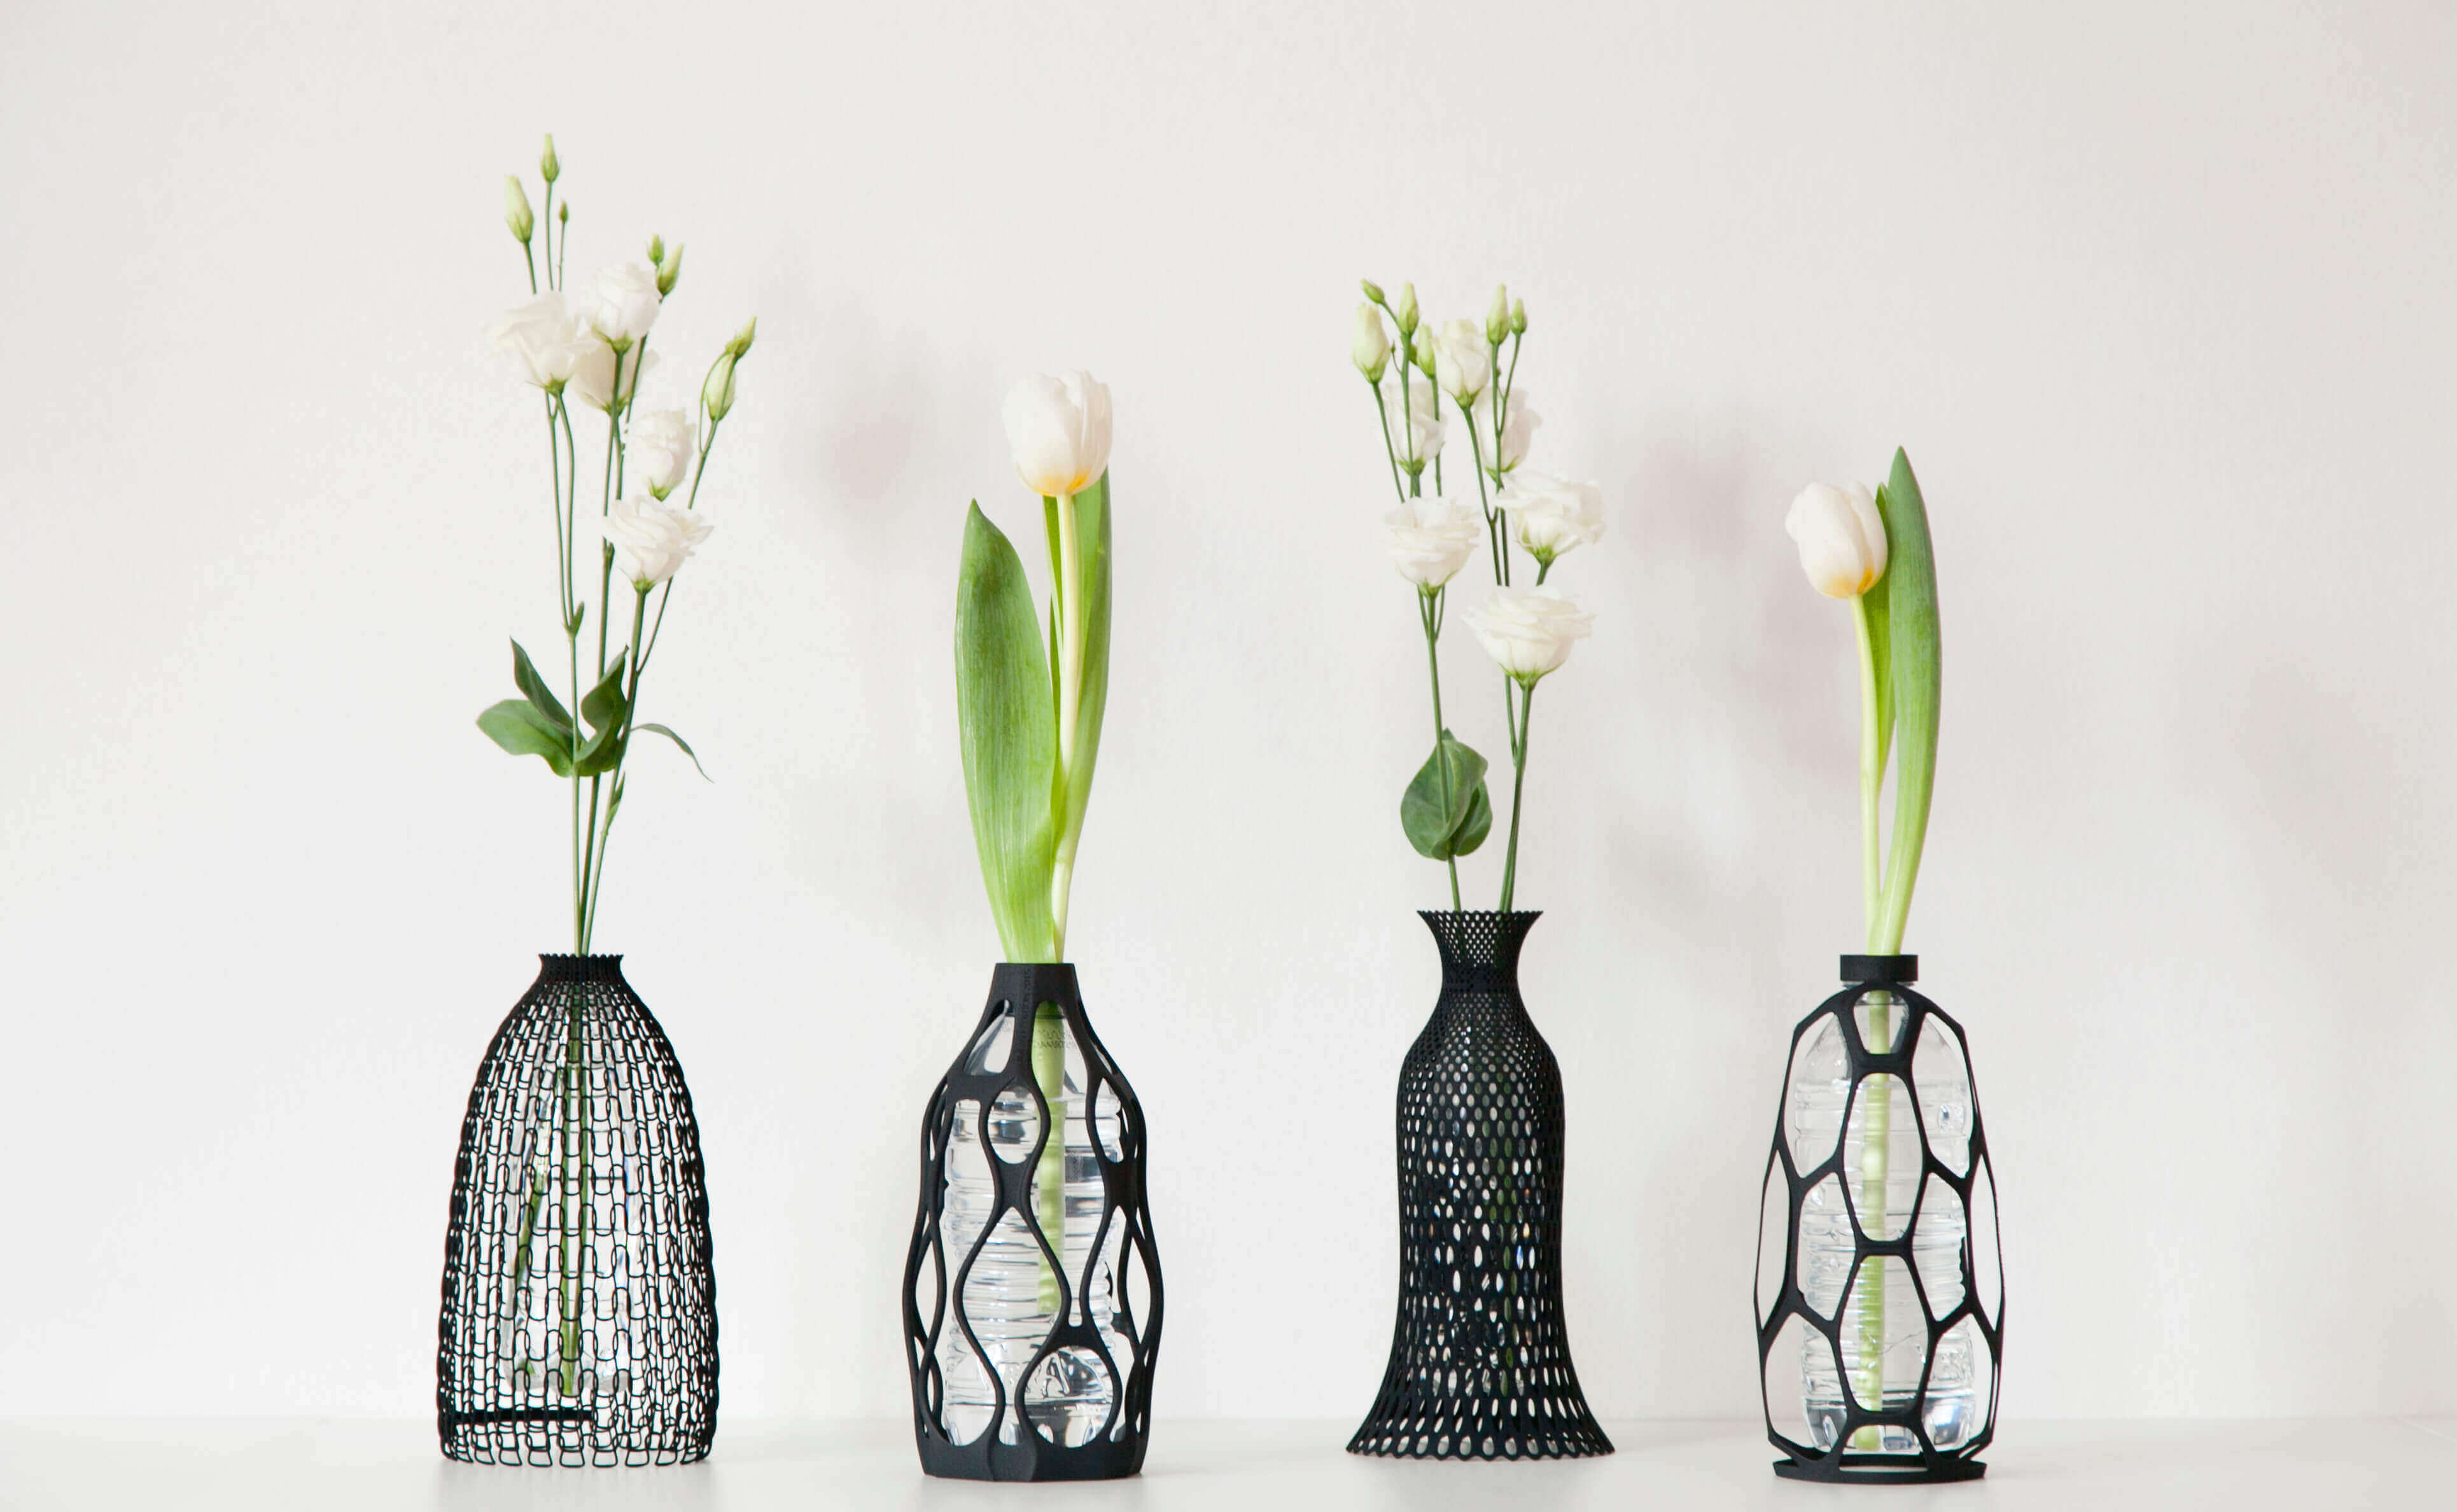 3D Printed Vase Promotes Plastic Bottle Recycling | All3DP